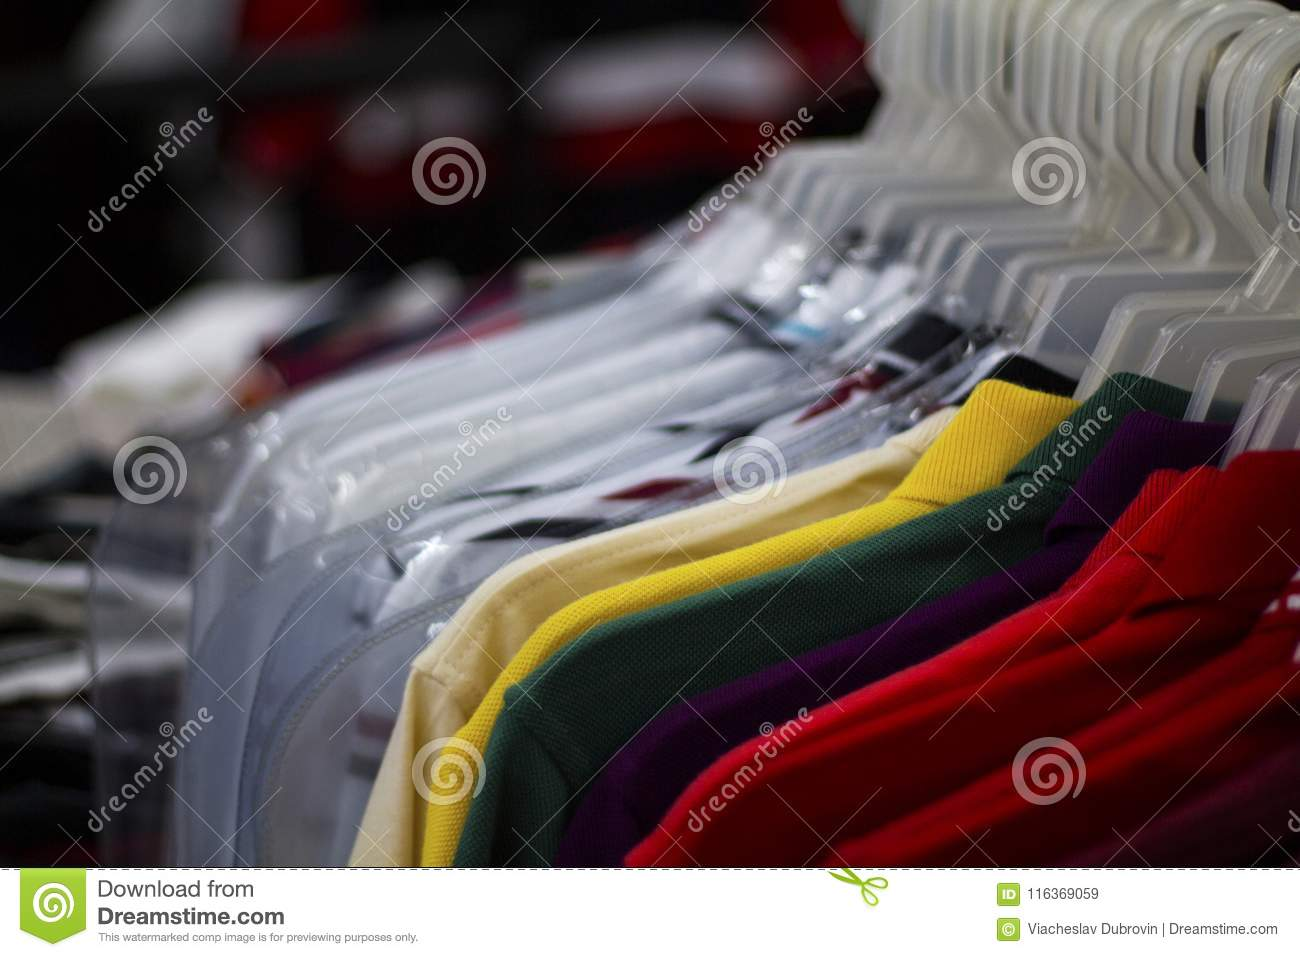 884b032329c Colorful t-shirts on hang for sale in shop. Multicolored summer polo on  hanger.